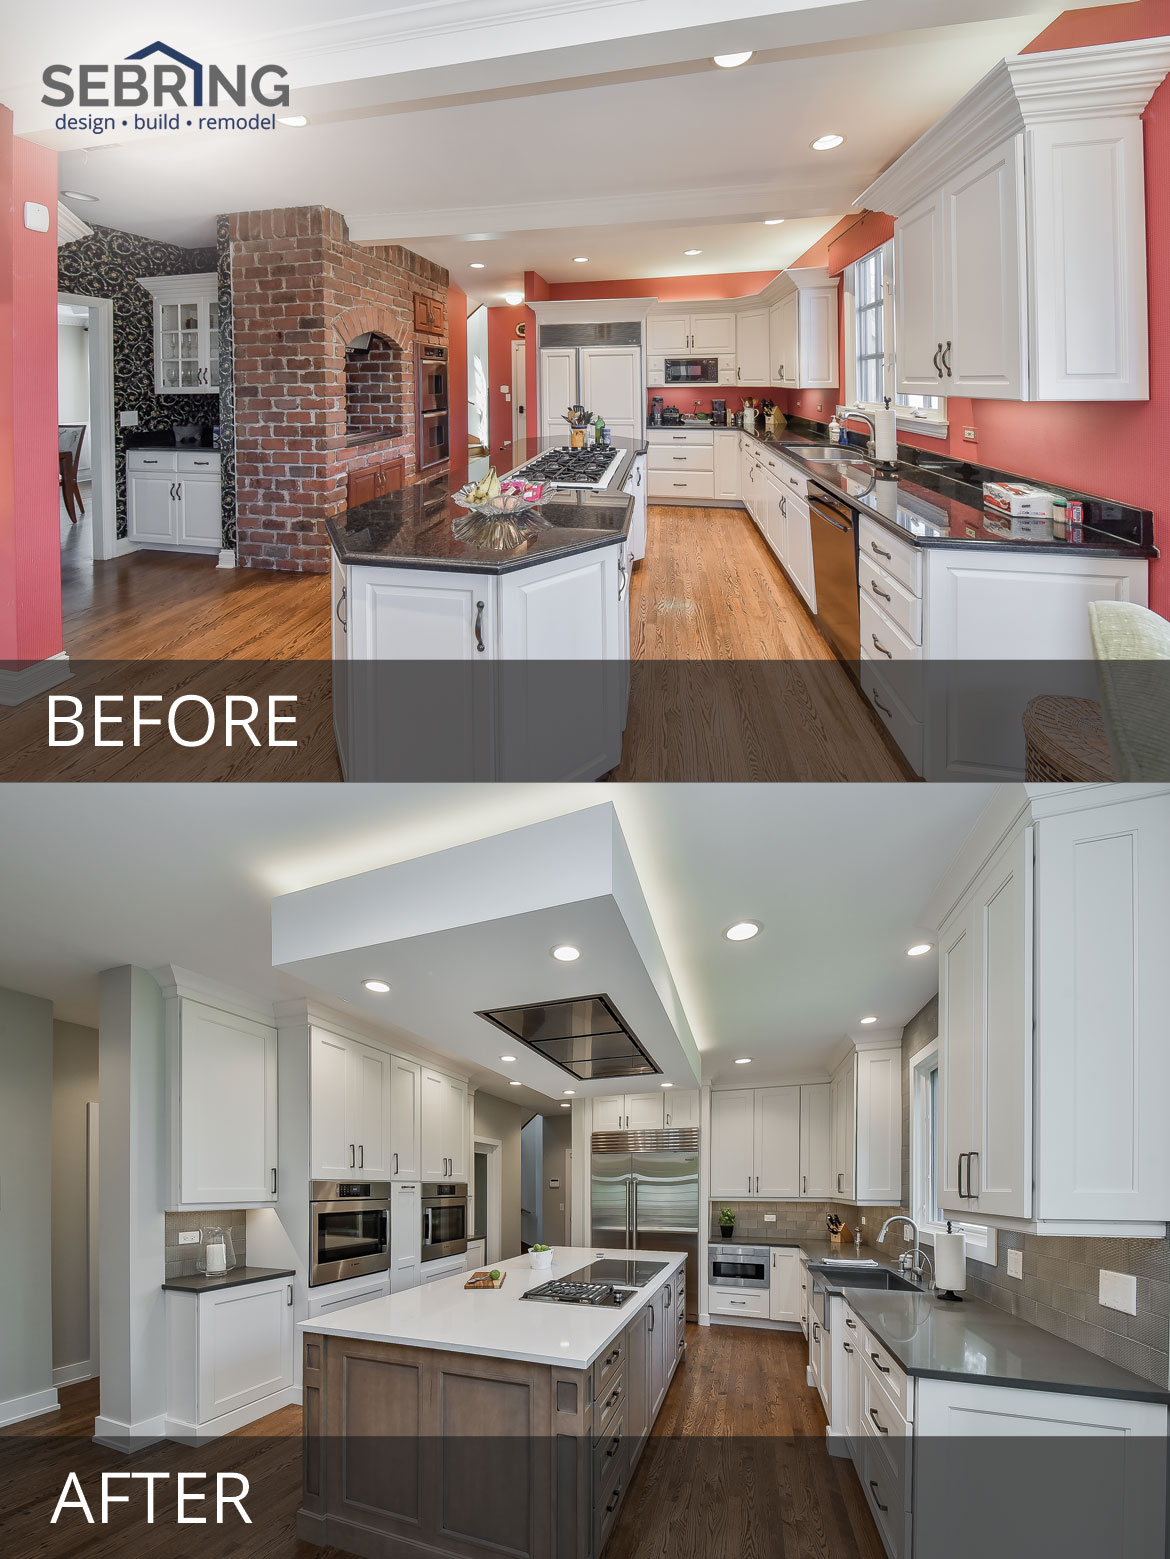 Wheaton Kitchen Remodeling Project With High-End Details